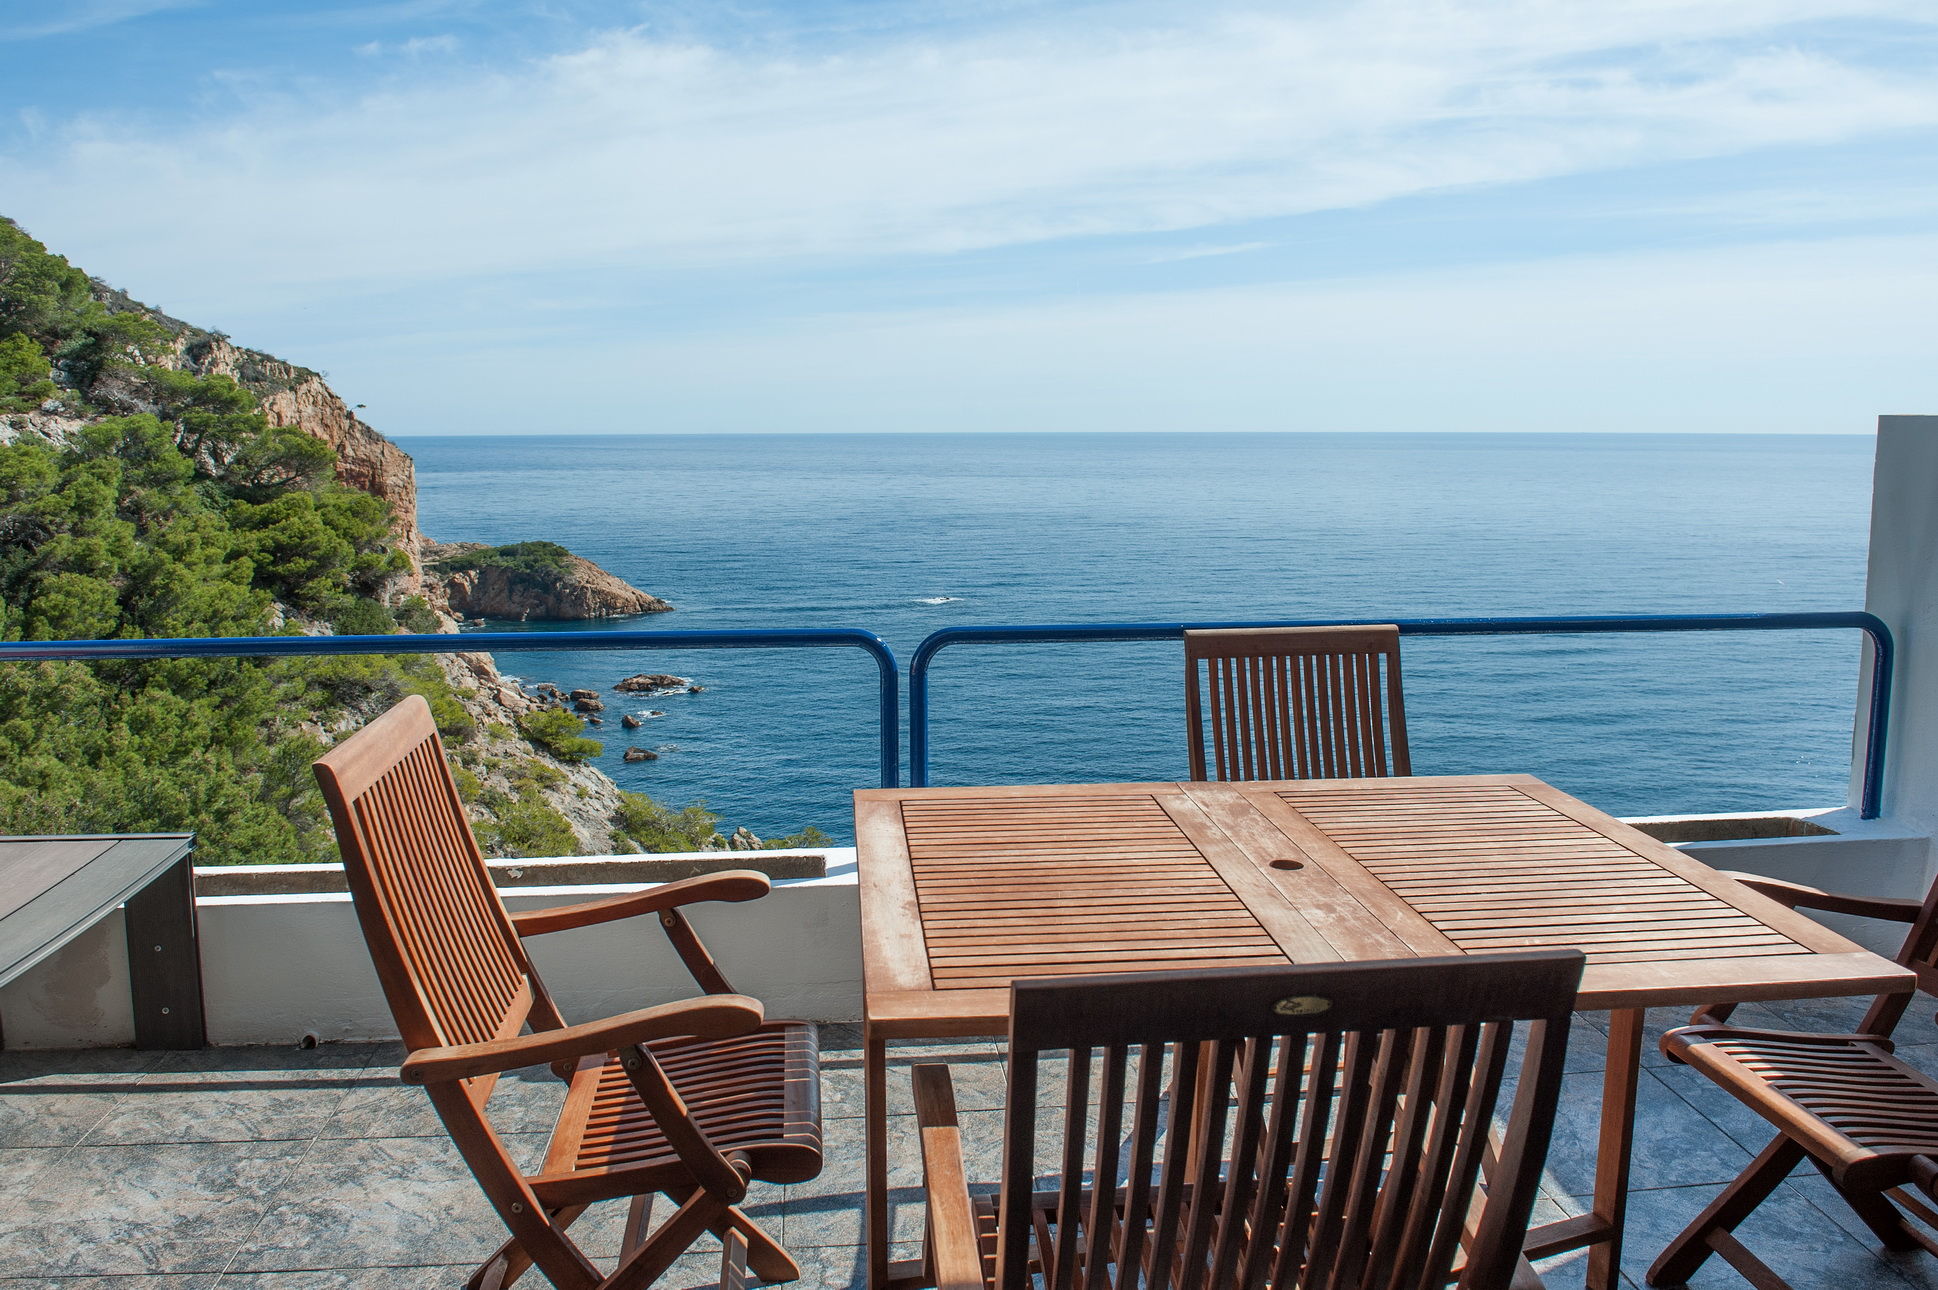 Apartment for Sale at Stunning views from this penthouse Begur, Costa Brava, 17255 Spain